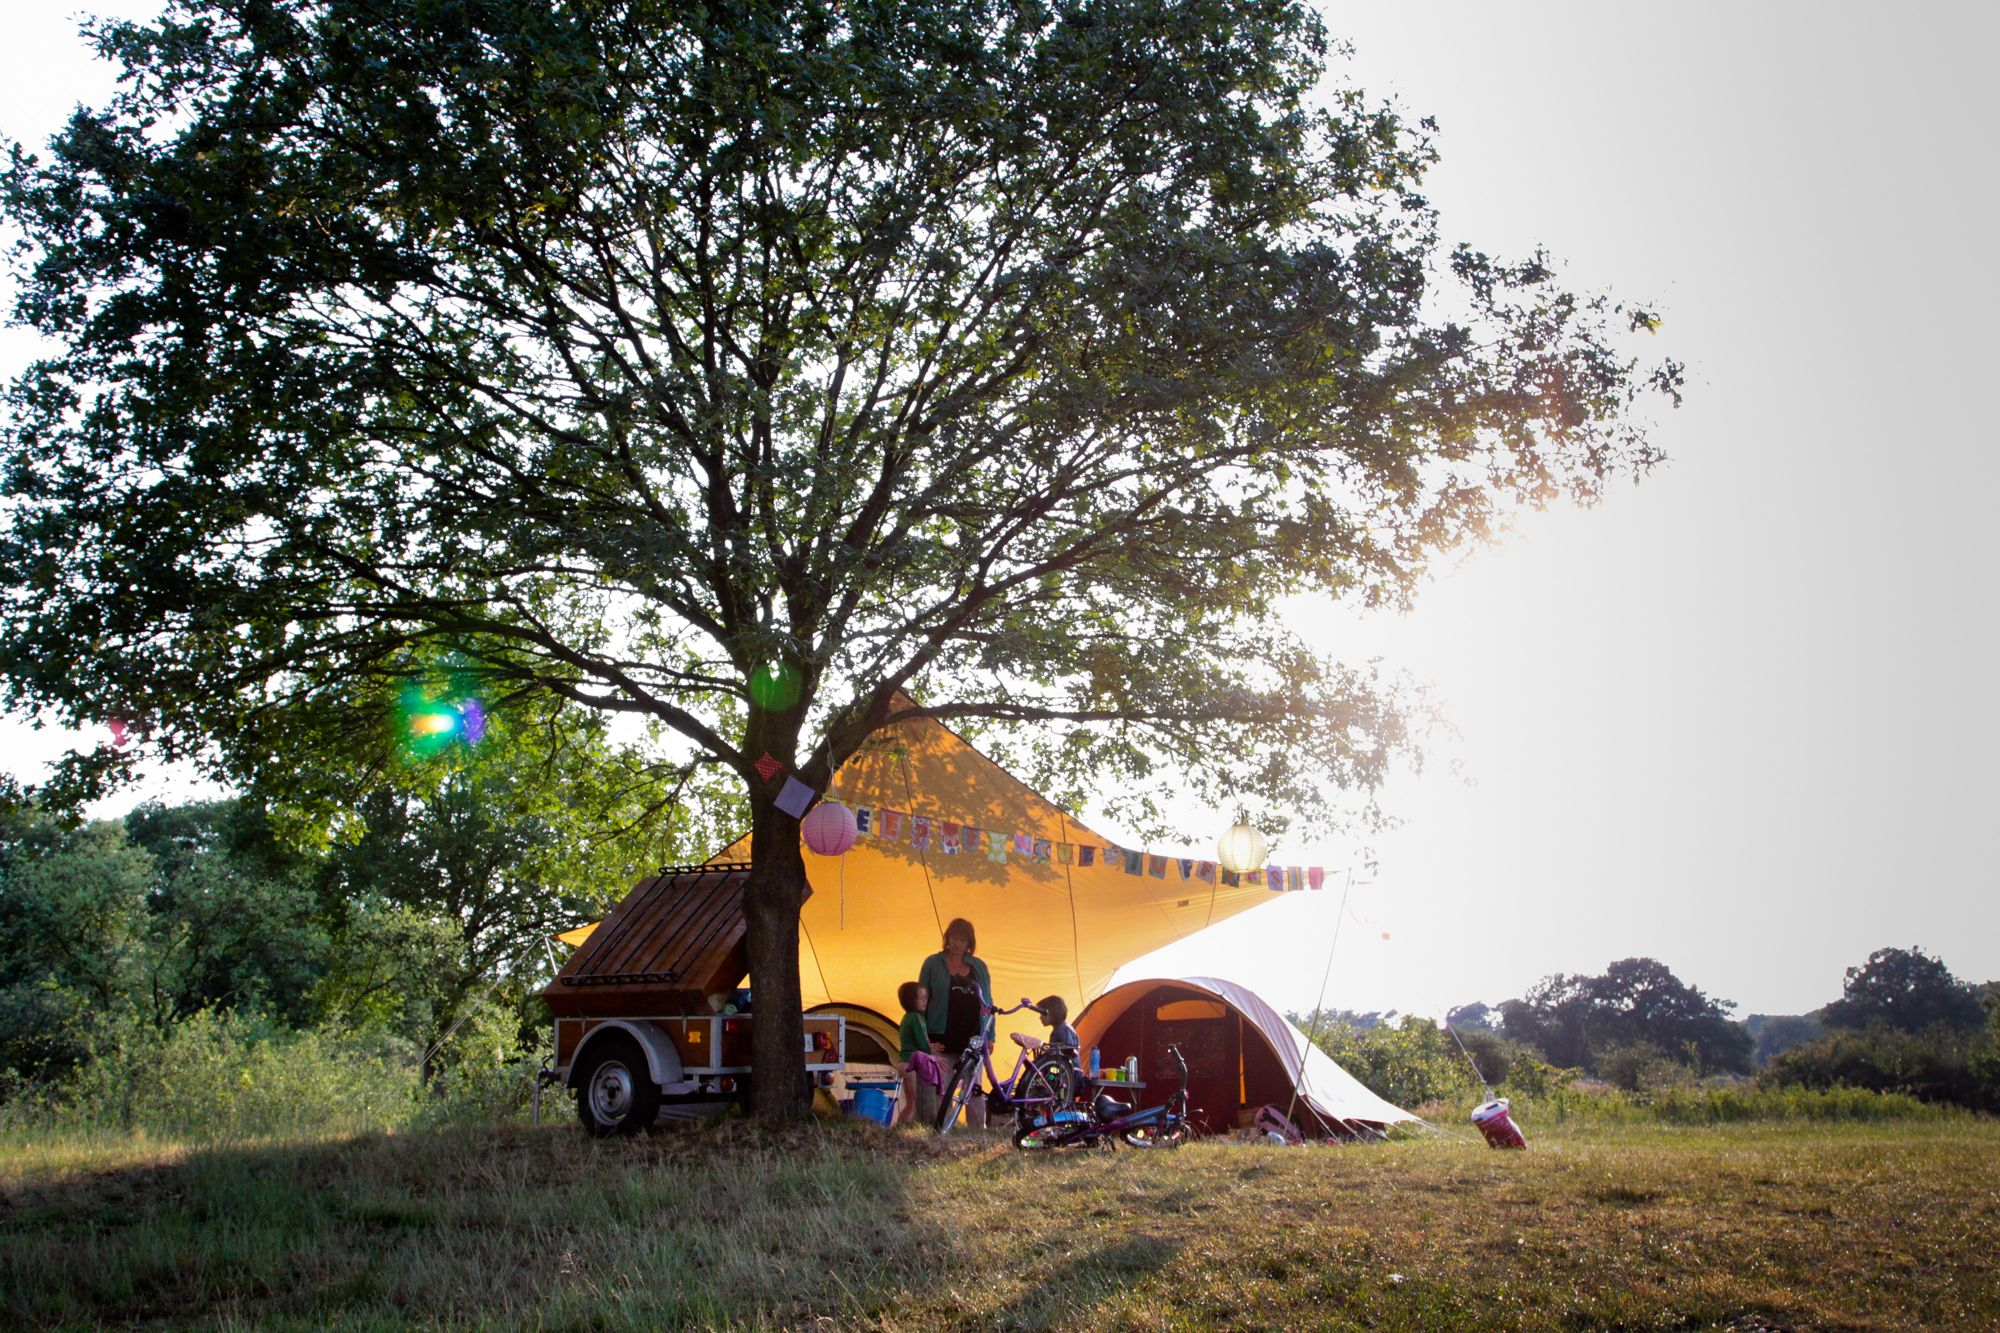 Campsites in Central Netherlands – Cool Camping